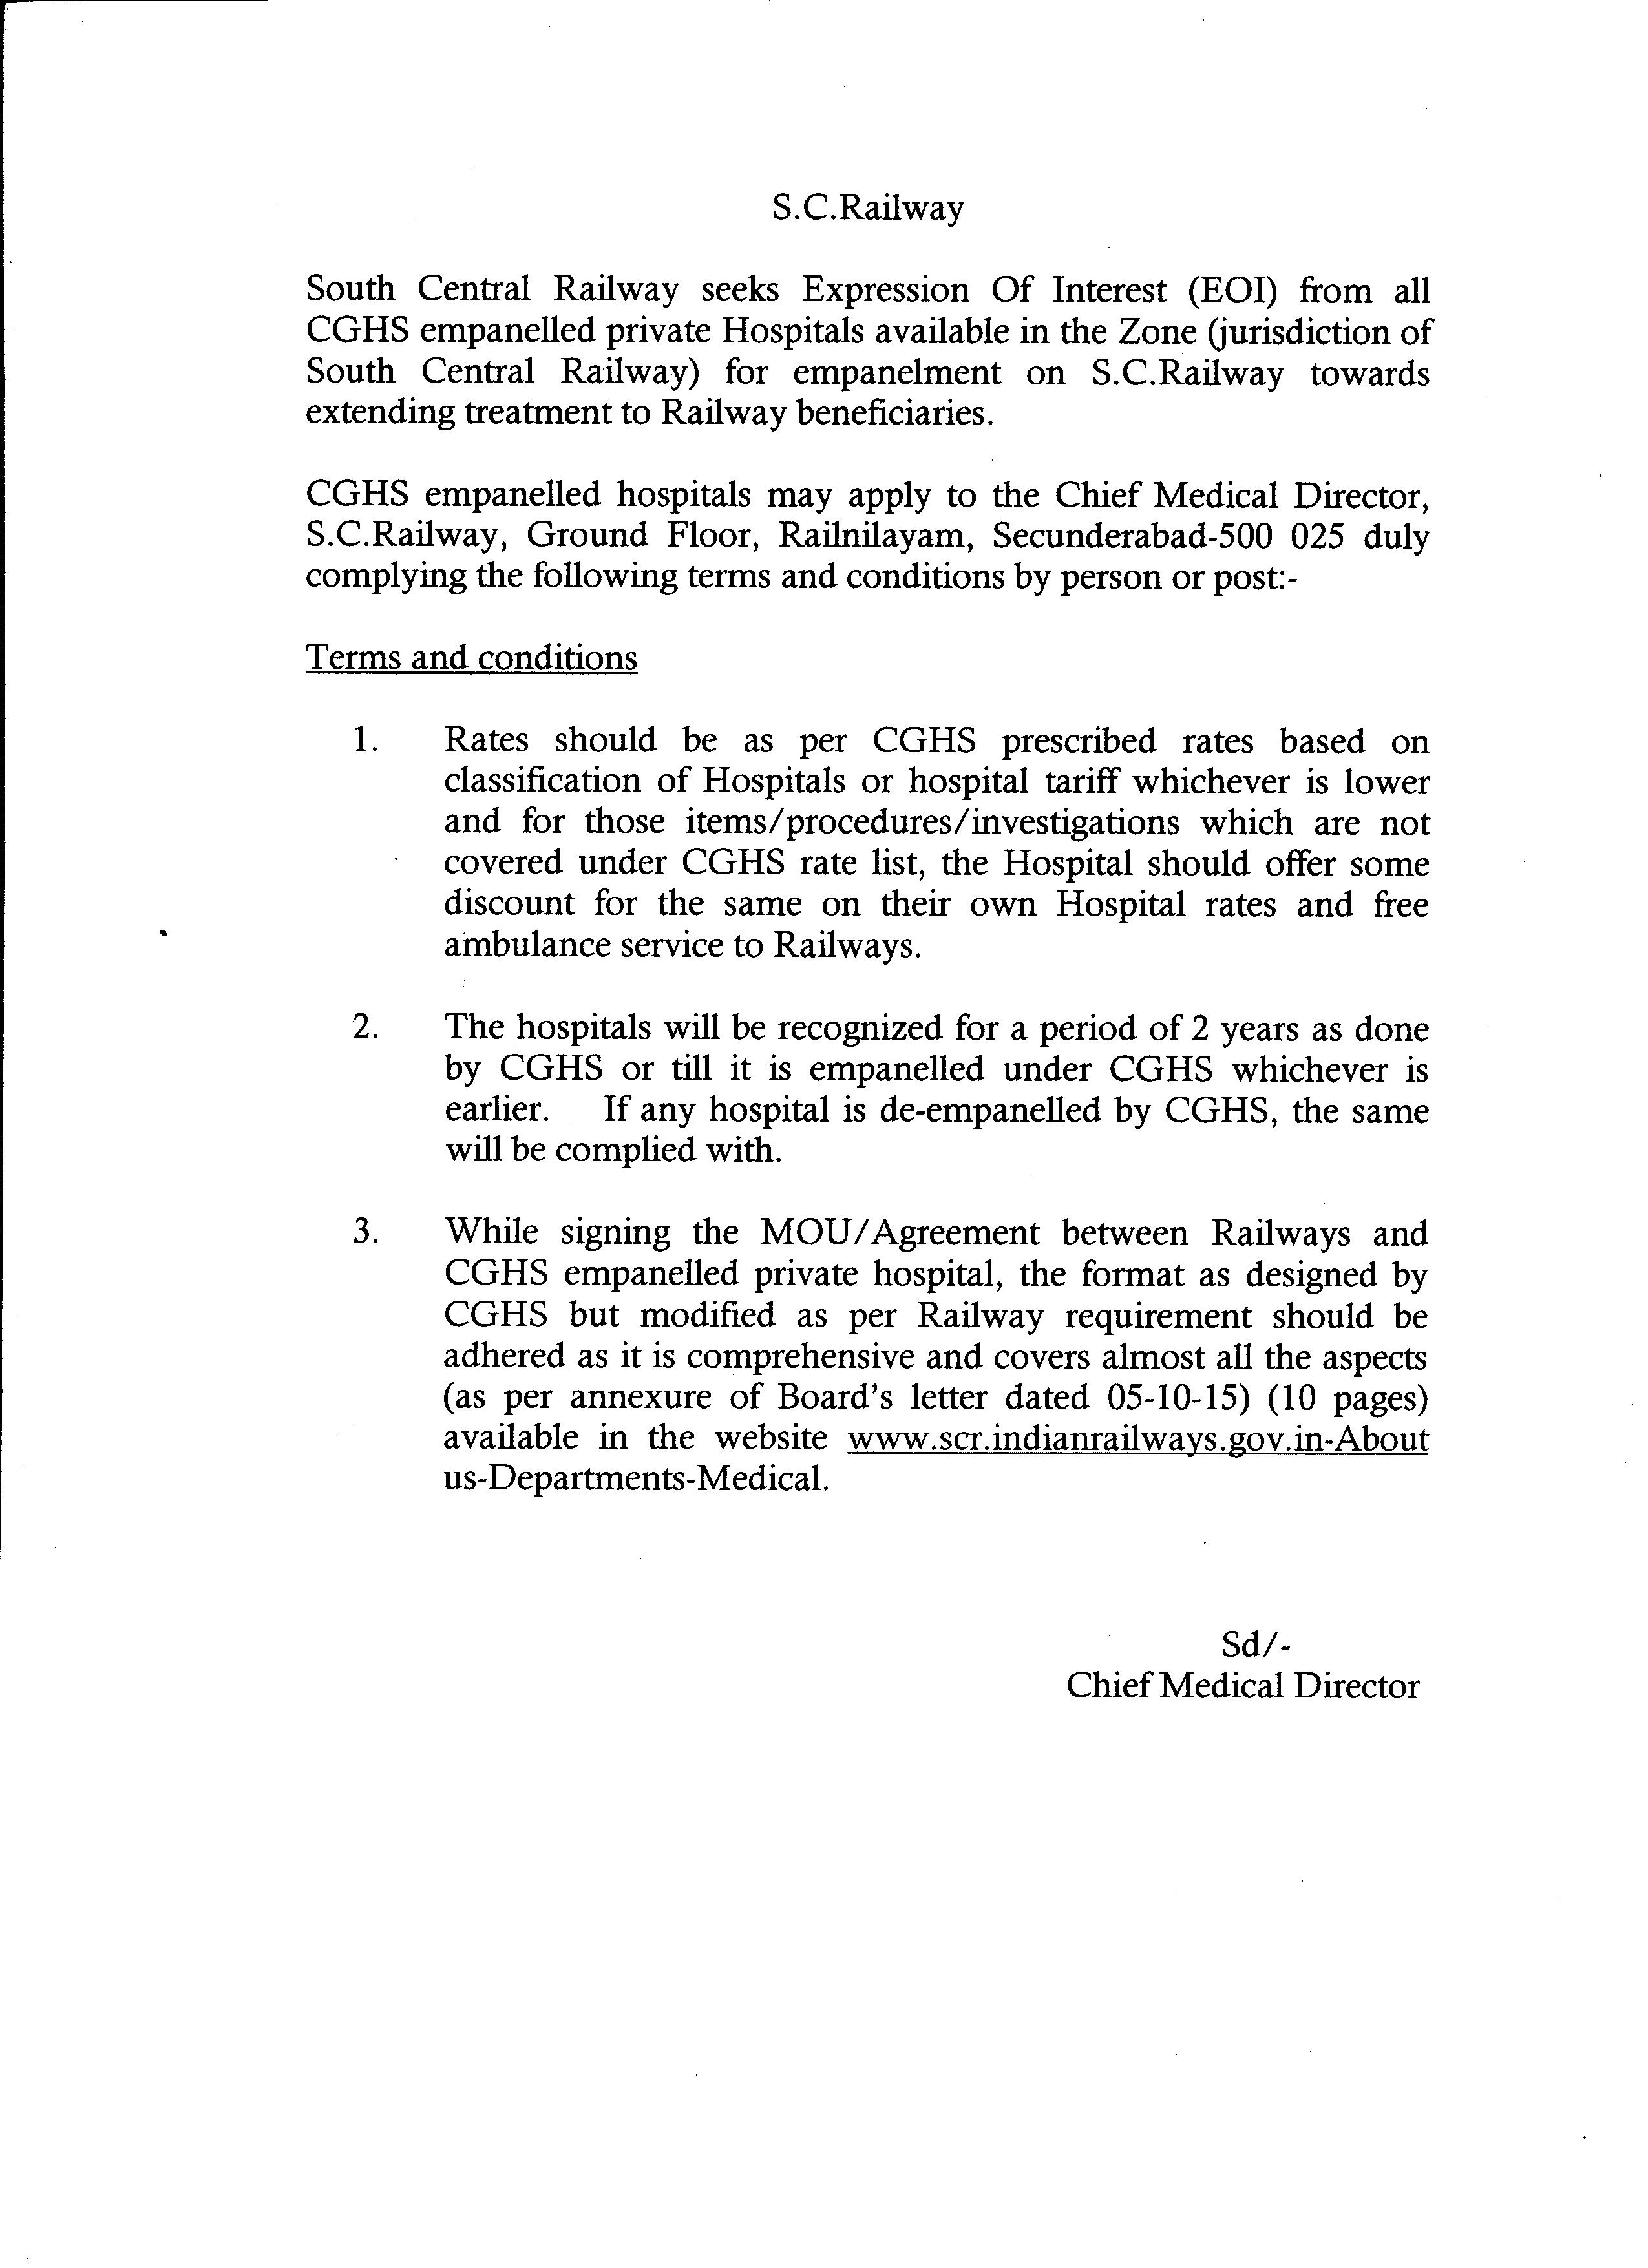 South central railway annexure to notice on eoi empanelment of private hospitals agreement terms and conditions 1betcityfo Gallery